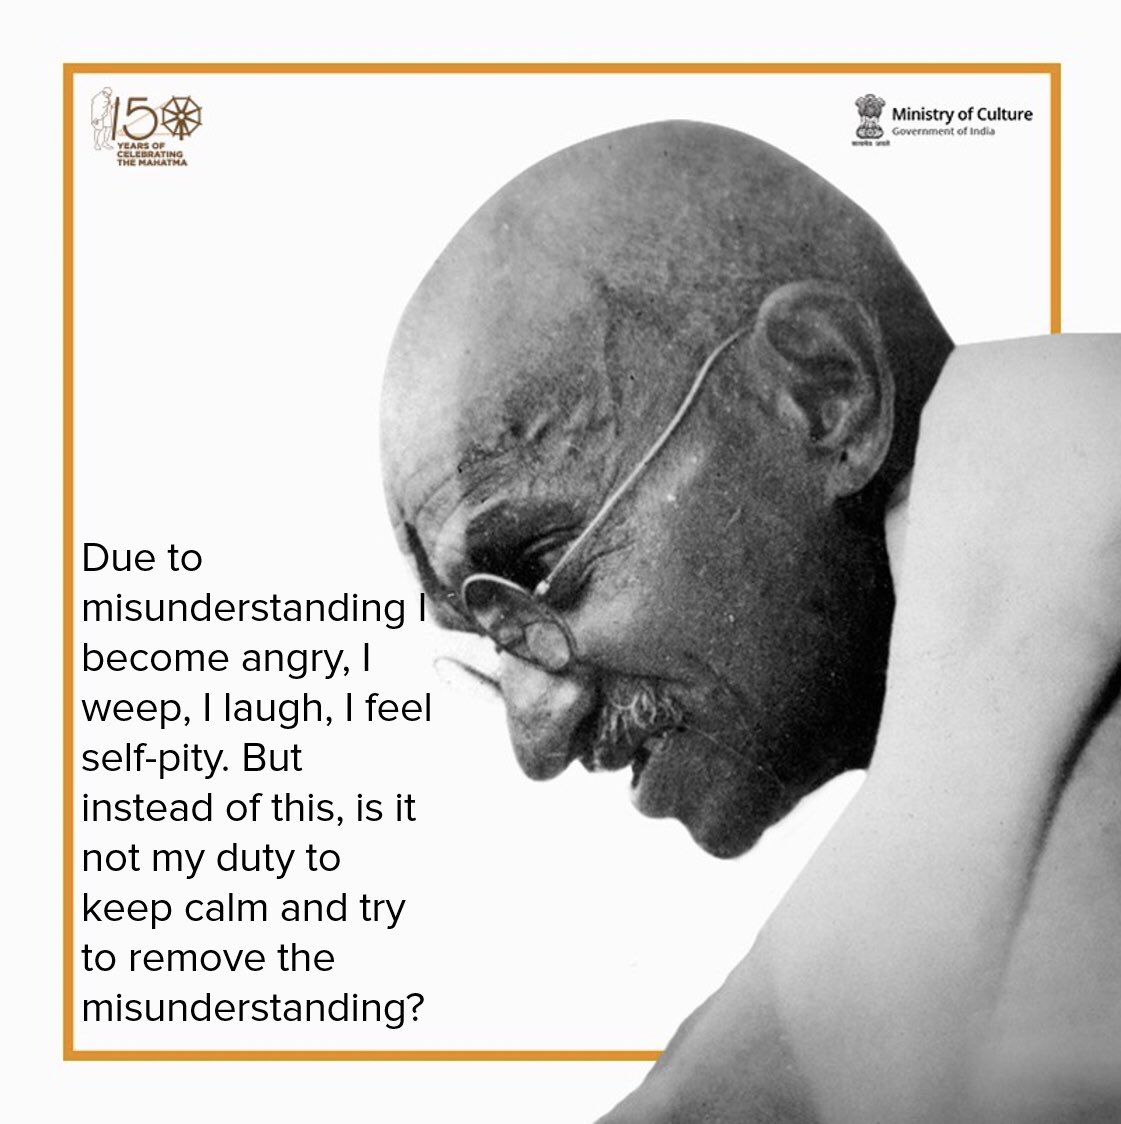 Due to misunderstanding I become angry, I weep, I laugh, I feel self-pity. But instead of this, is it not my duty to keep calm and try to remove the misunderstanding? - Mahatma Gandhi #Gandhi150 #Quoteoftheday